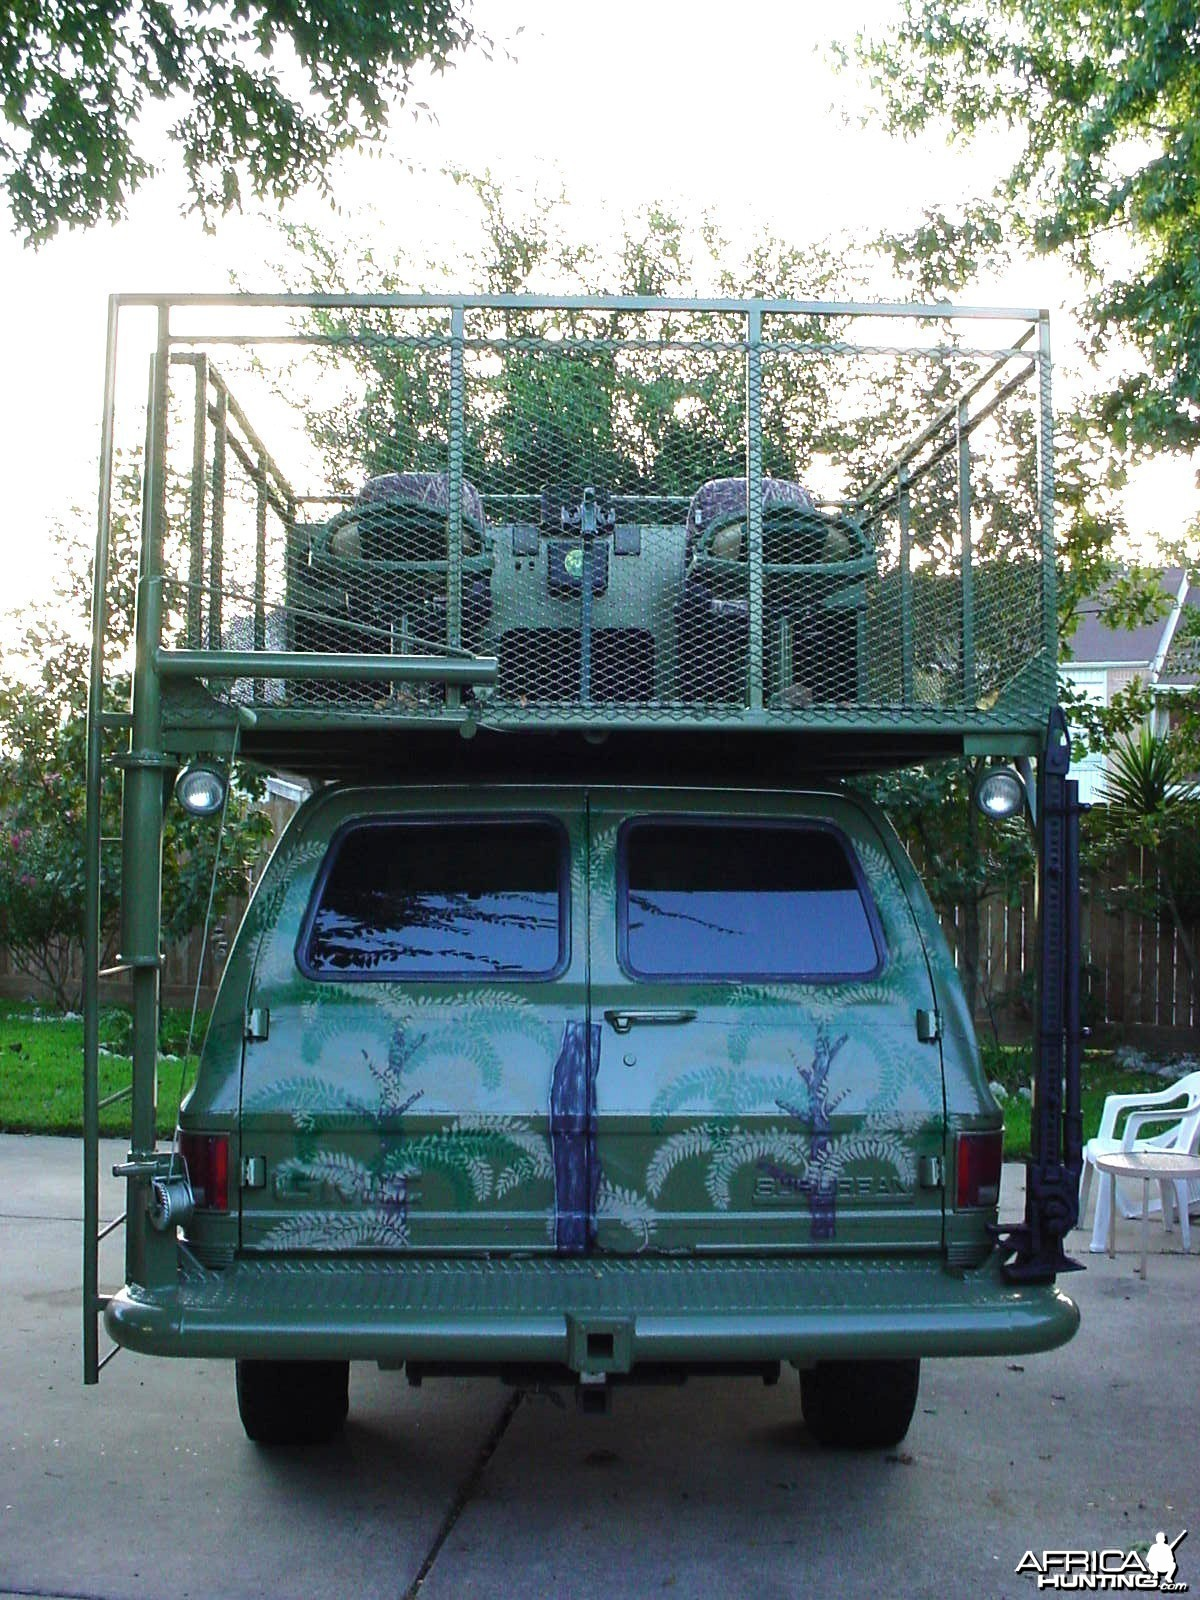 My hunting rig I built myself in 2004